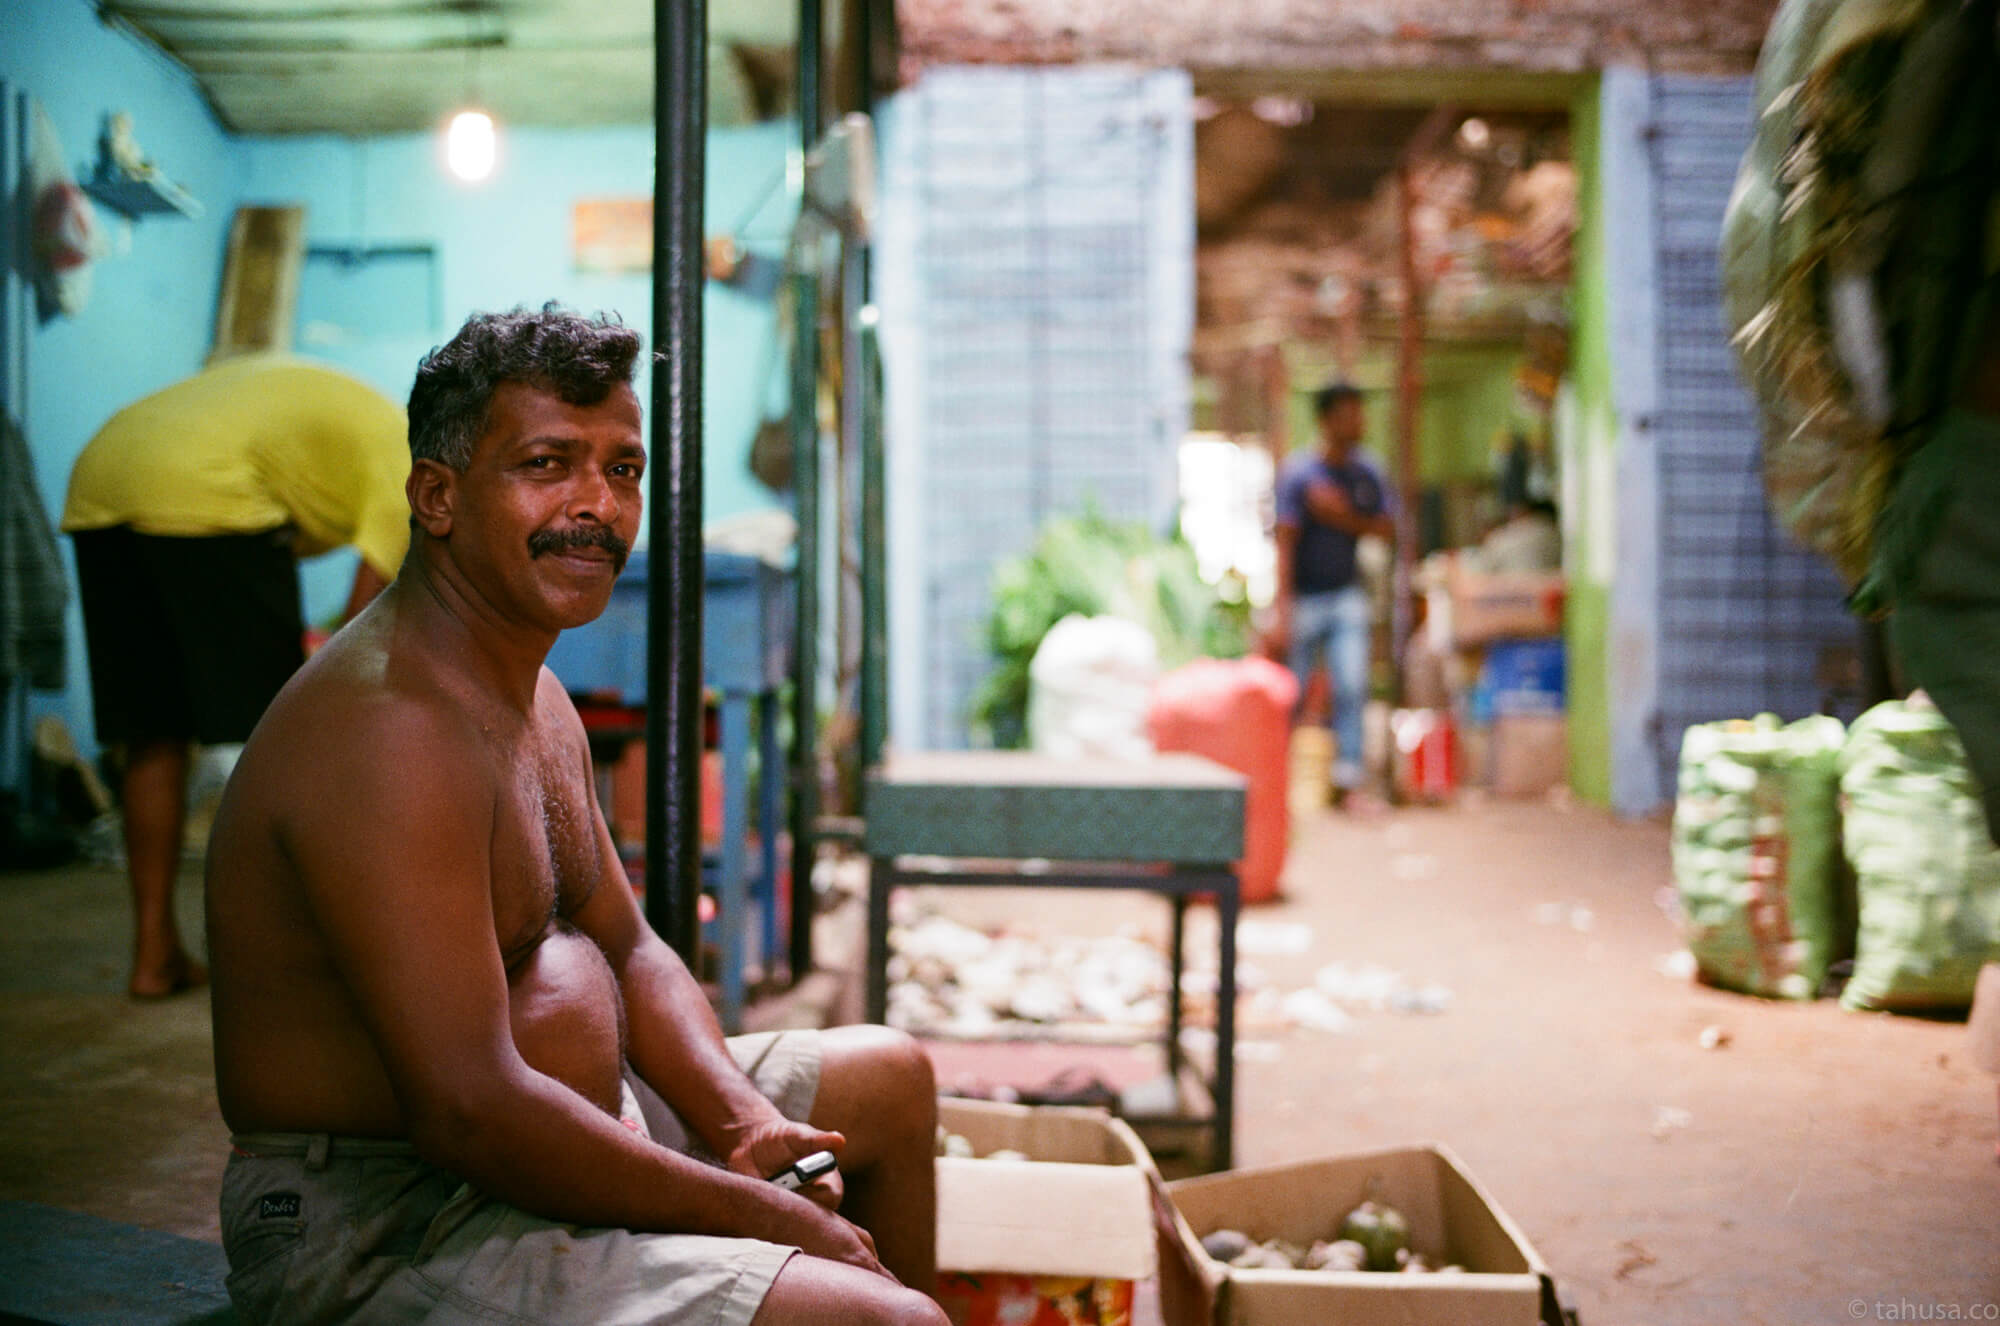 man-sitting-inside-market-斯里蘭卡-Colombo-pettah-market-manning-sri-lanka-sri-lankan-nuwara-eliya-colombo-using-film-camera-with-analog-fuji-superia-premium-400-iso400-with-leica-summilux-35mm-f1.4-asph-fle-film-review-blog